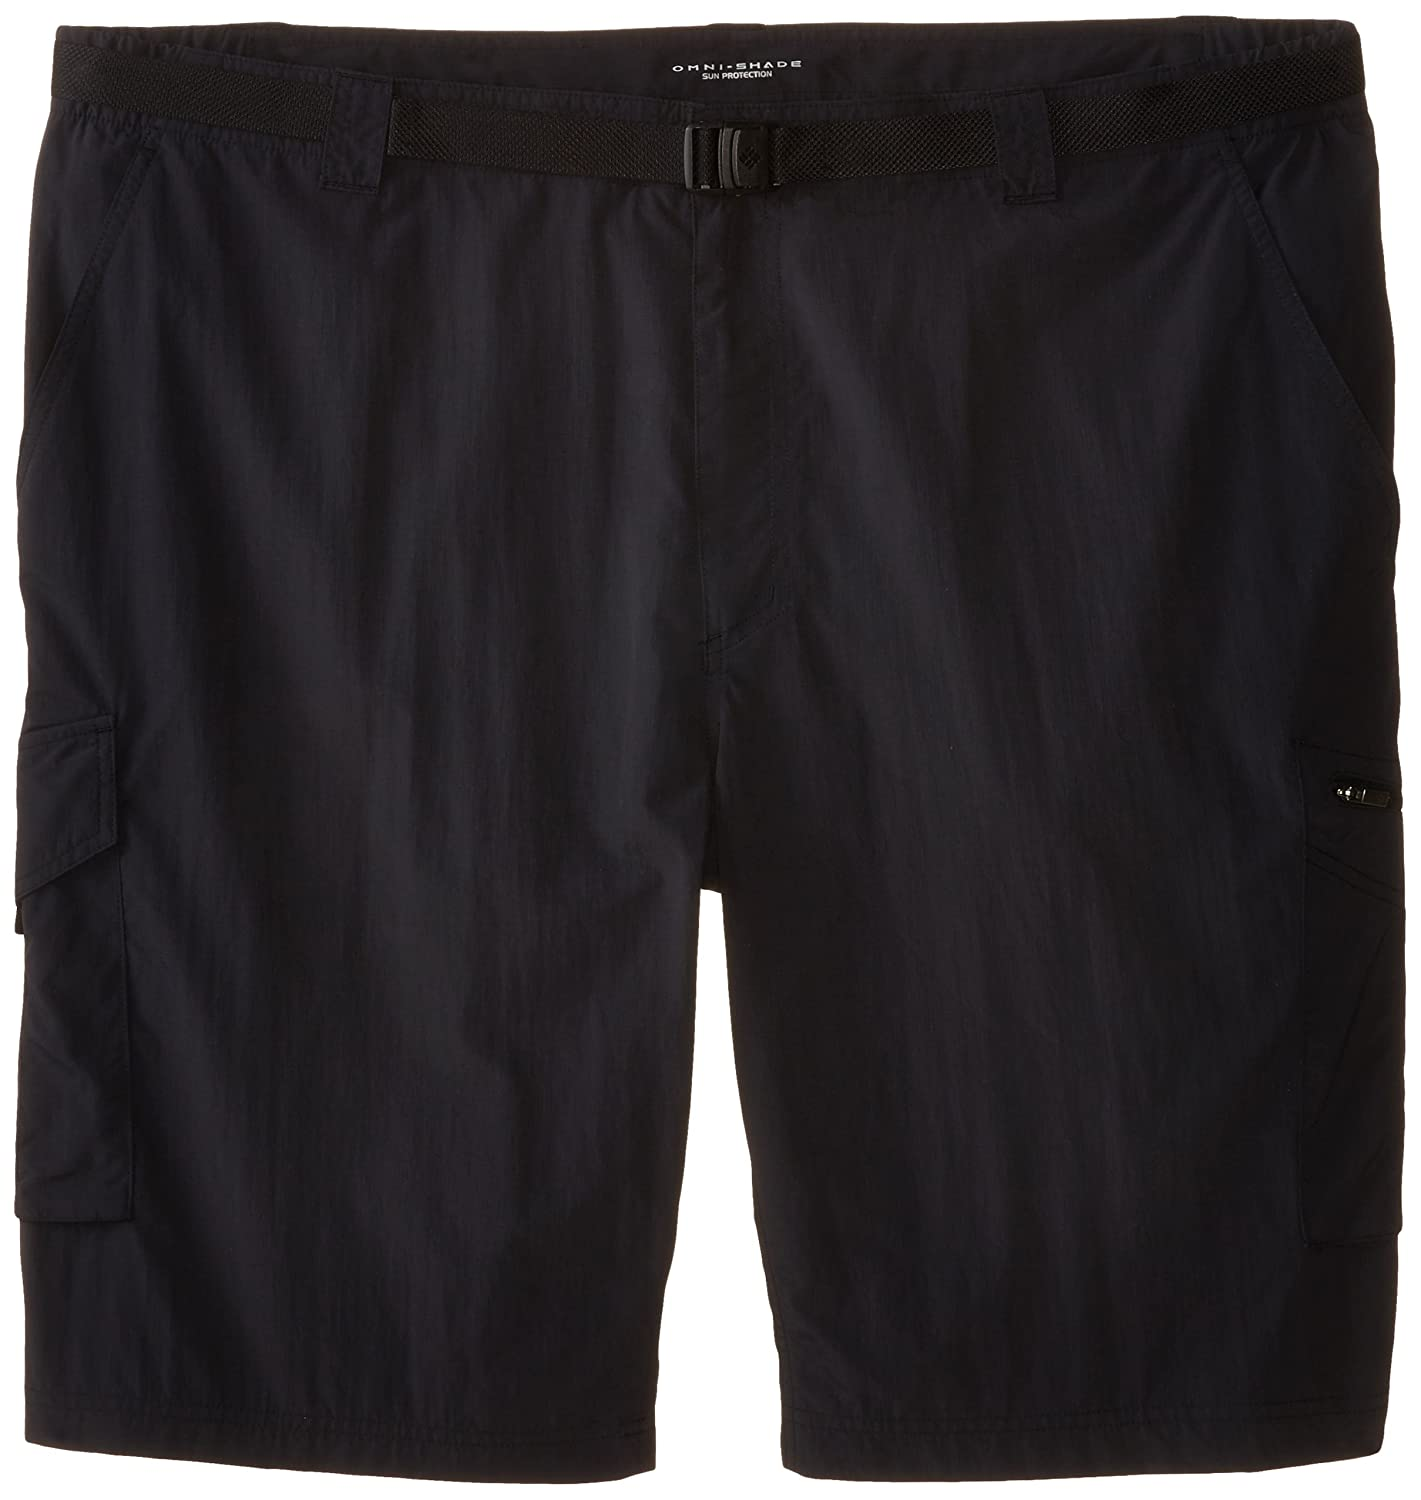 Columbia Sportswear Men's Silver Ridge Cargo Shorts Columbia (Sporting Goods)